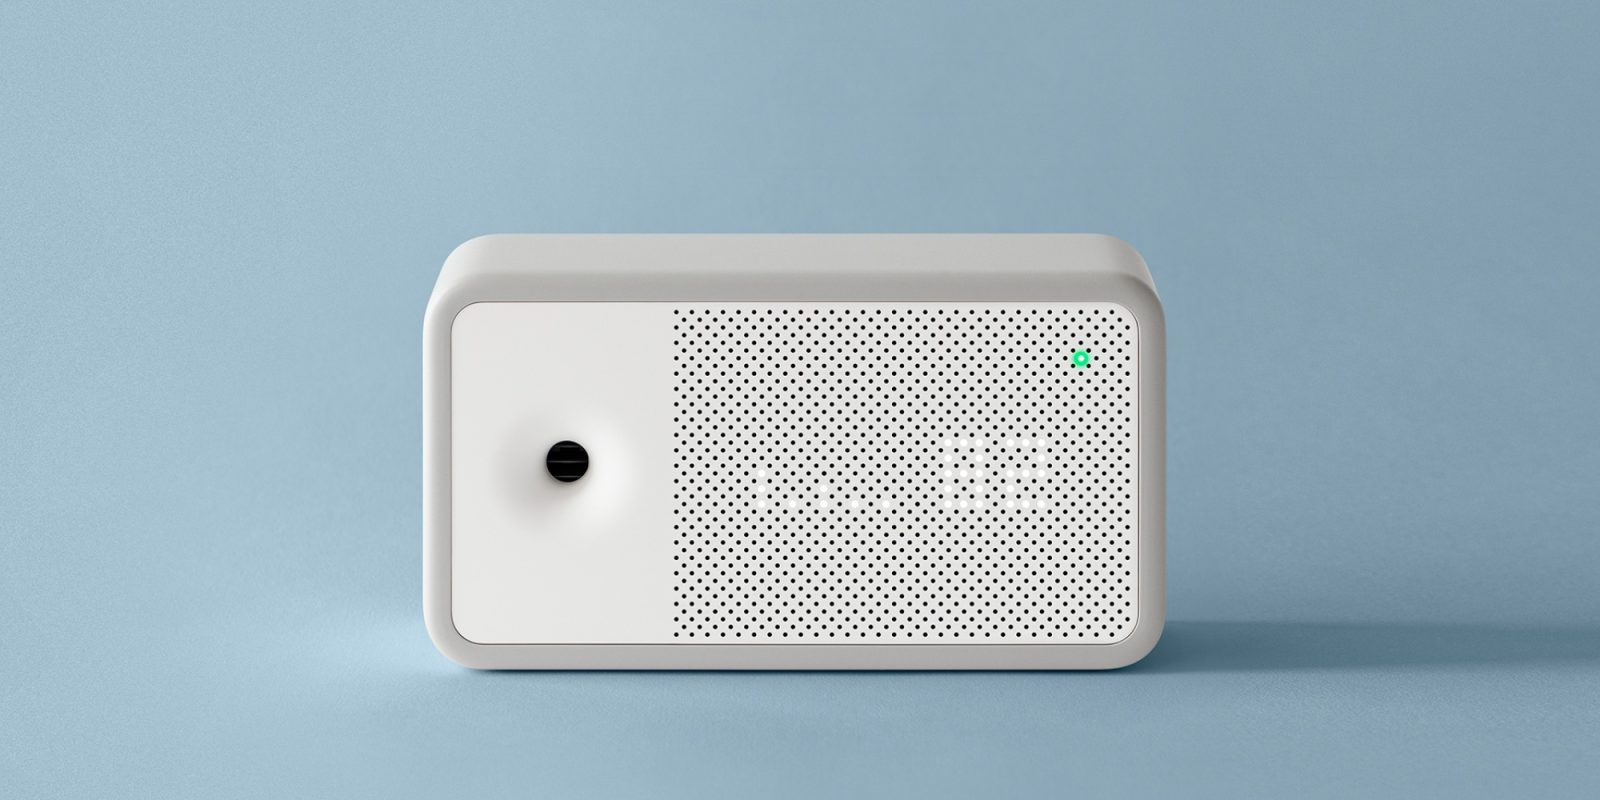 Awair Element brings more affordable air quality monitoring to your smart home